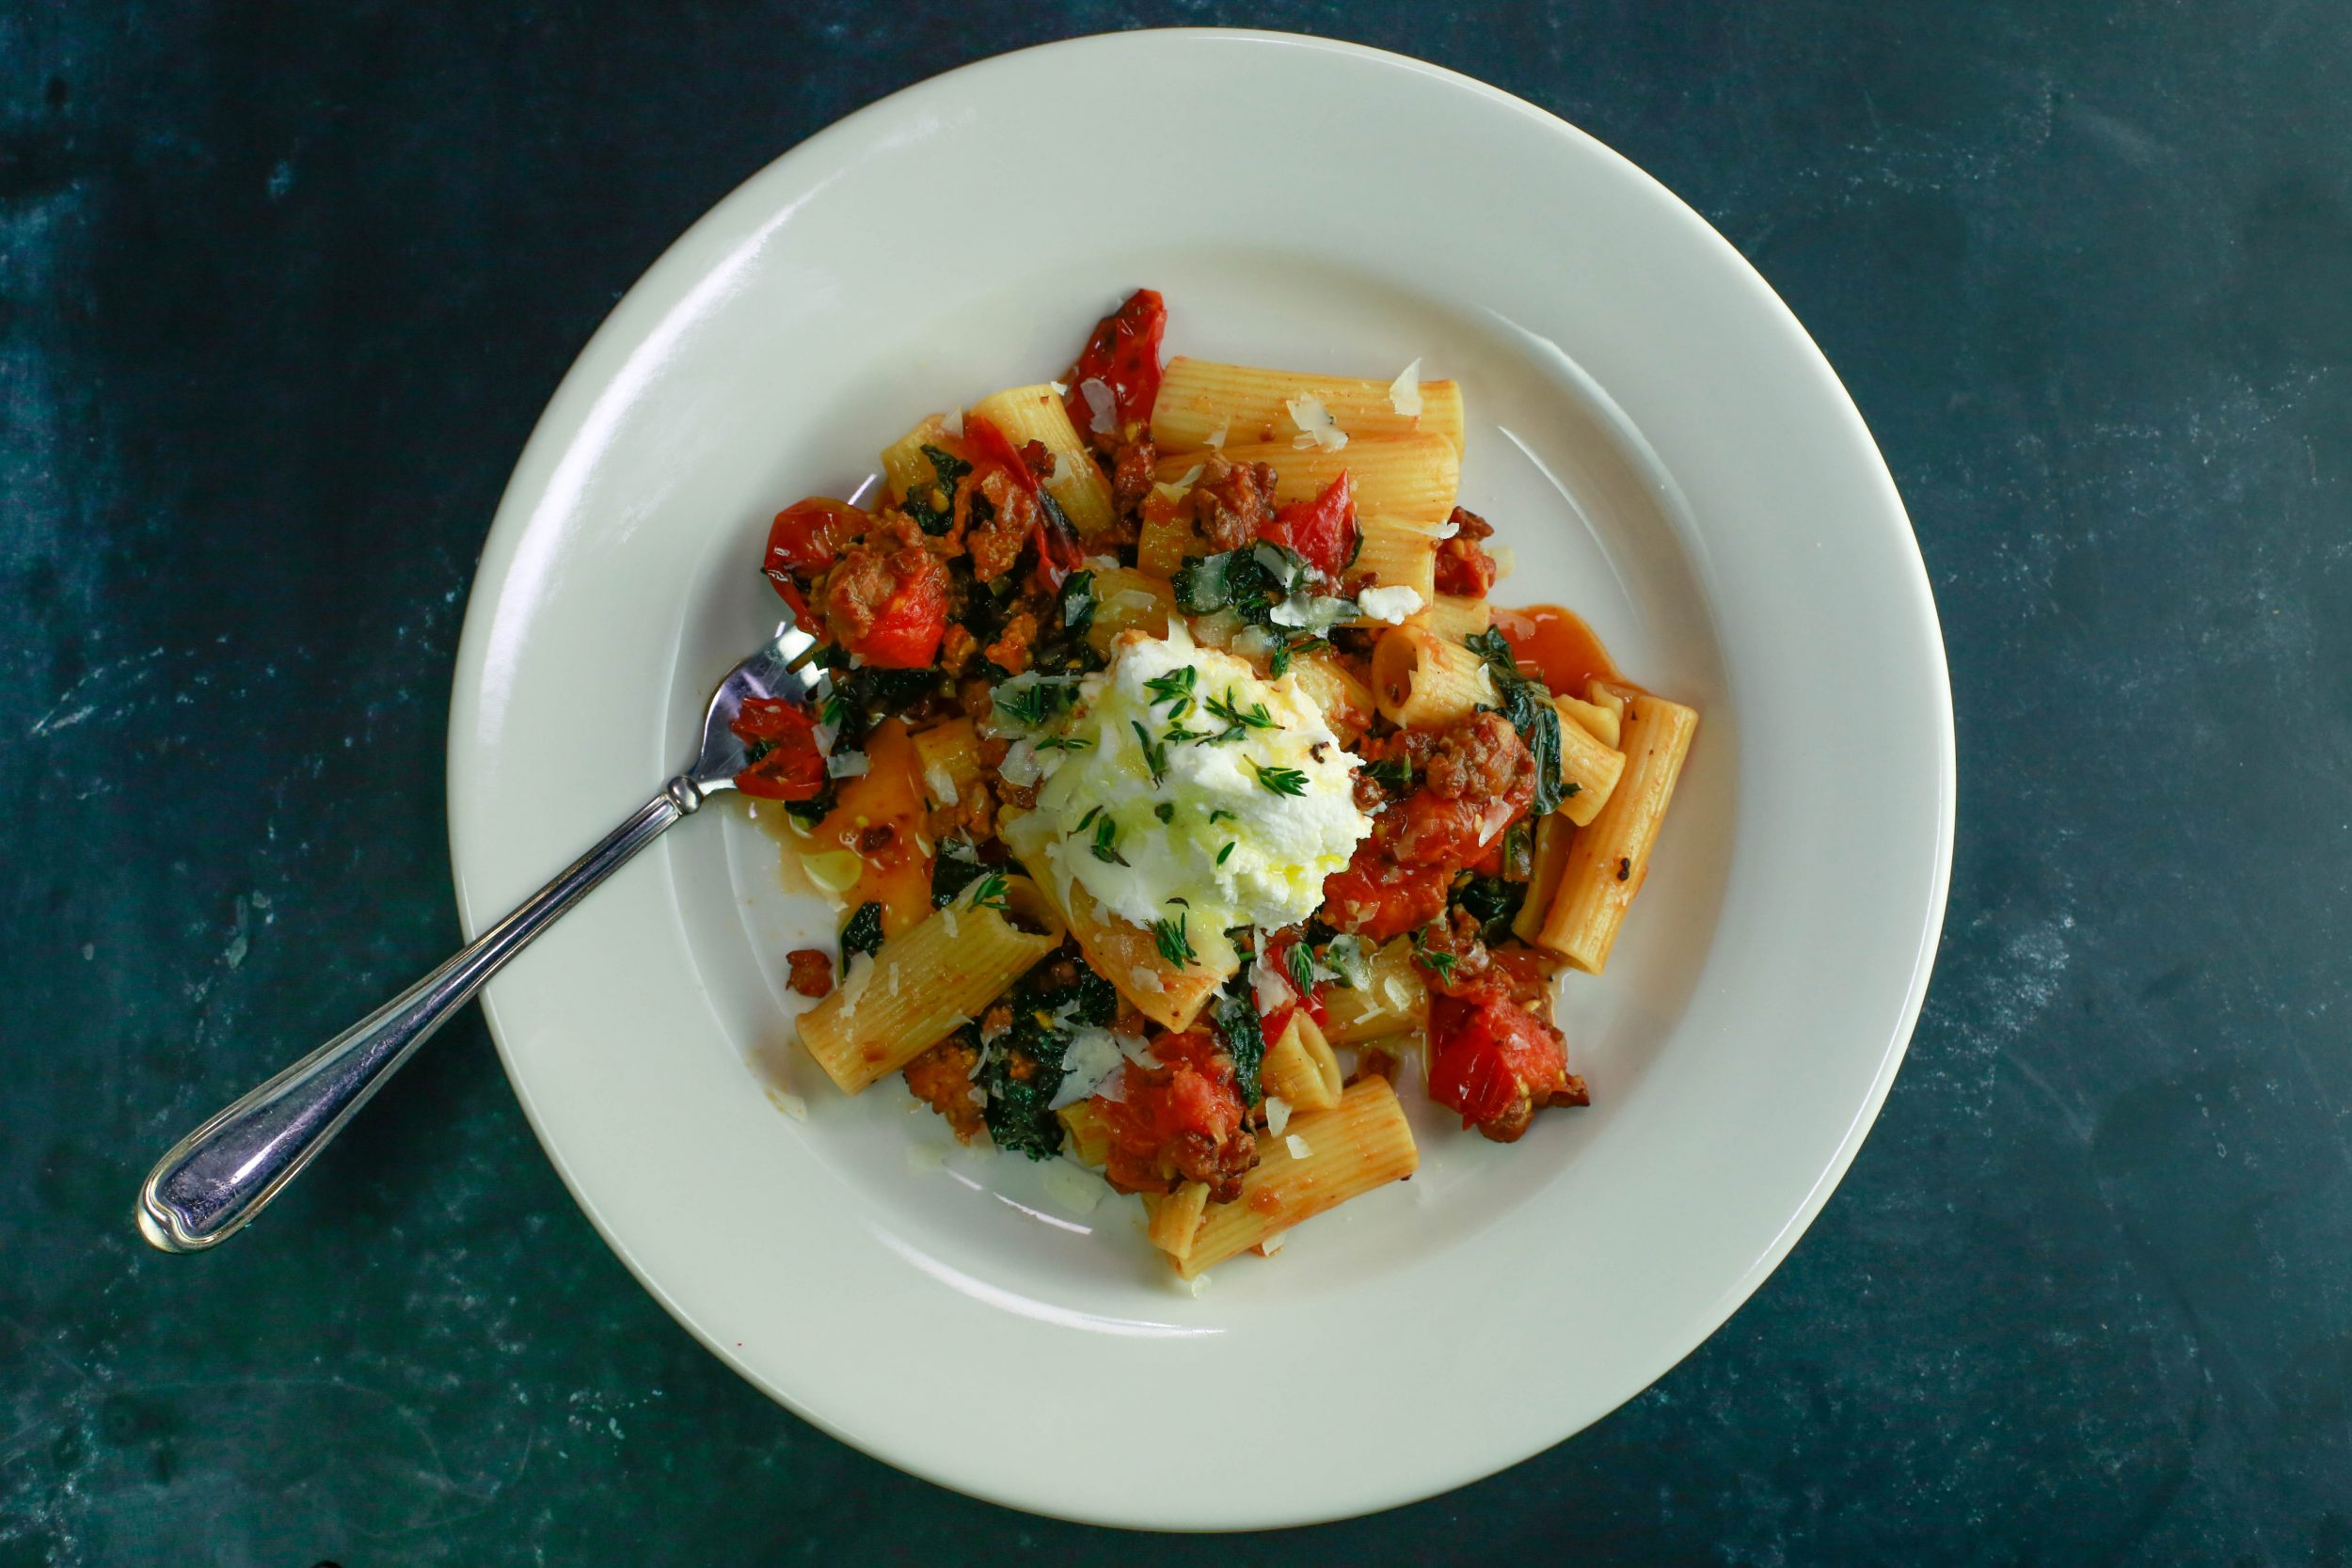 Riggies with Charred Tomatoes, Hot Sausage, Kale and Ricotta